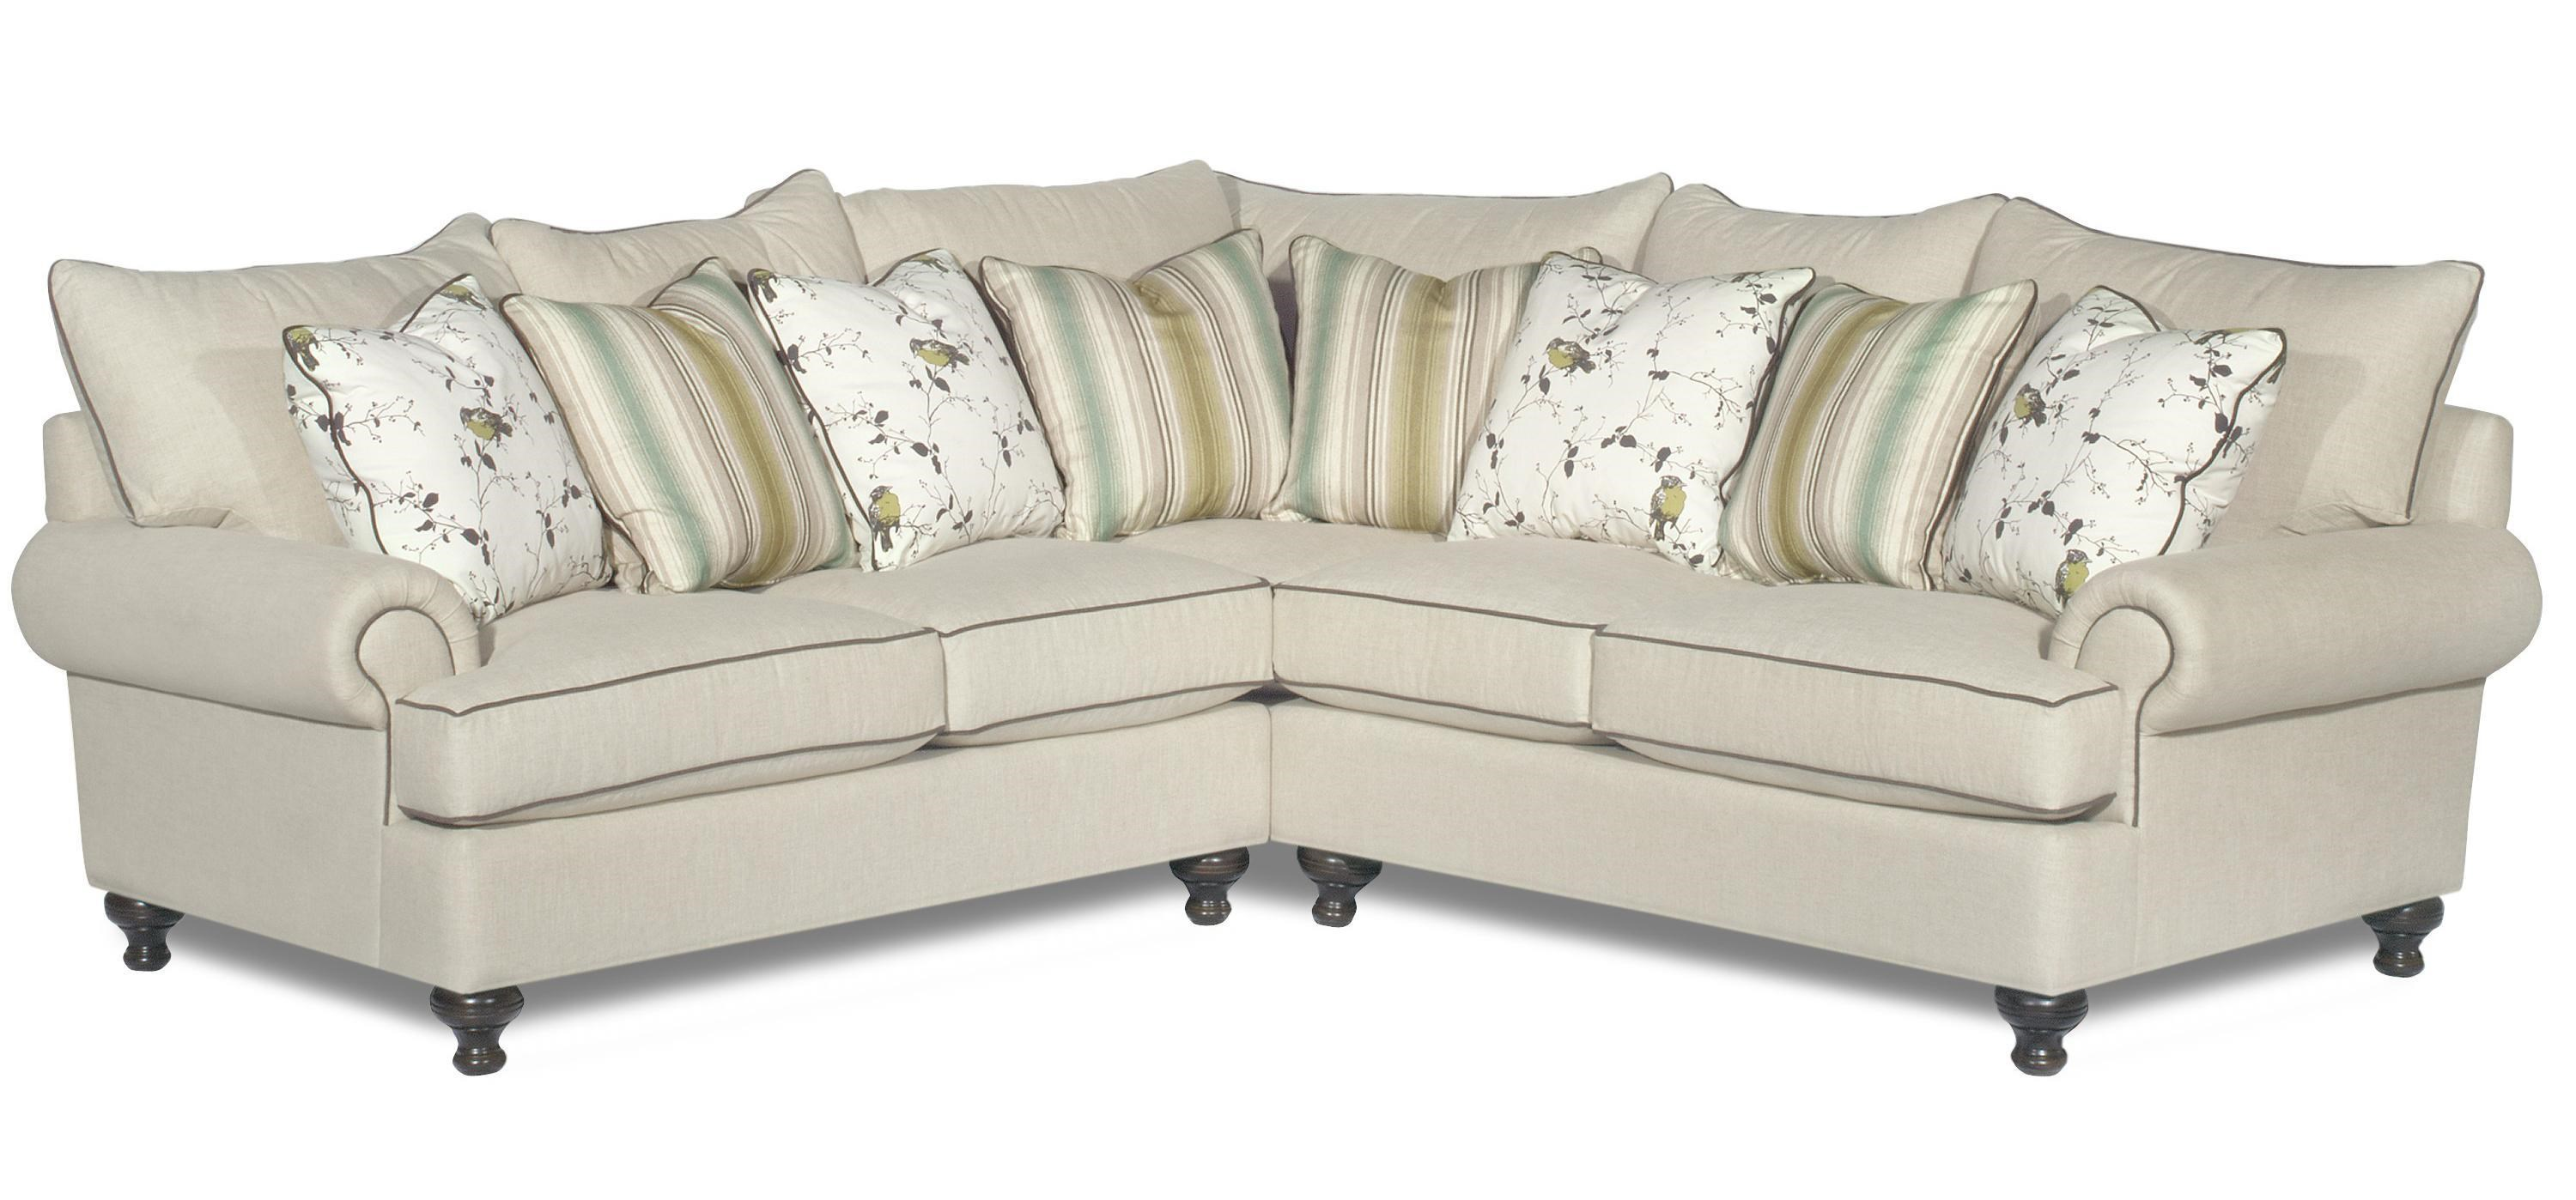 Paula Deen By Craftmaster P711700 2 Piece Sectional Sofa With Rolled Arms  And Turned Feet